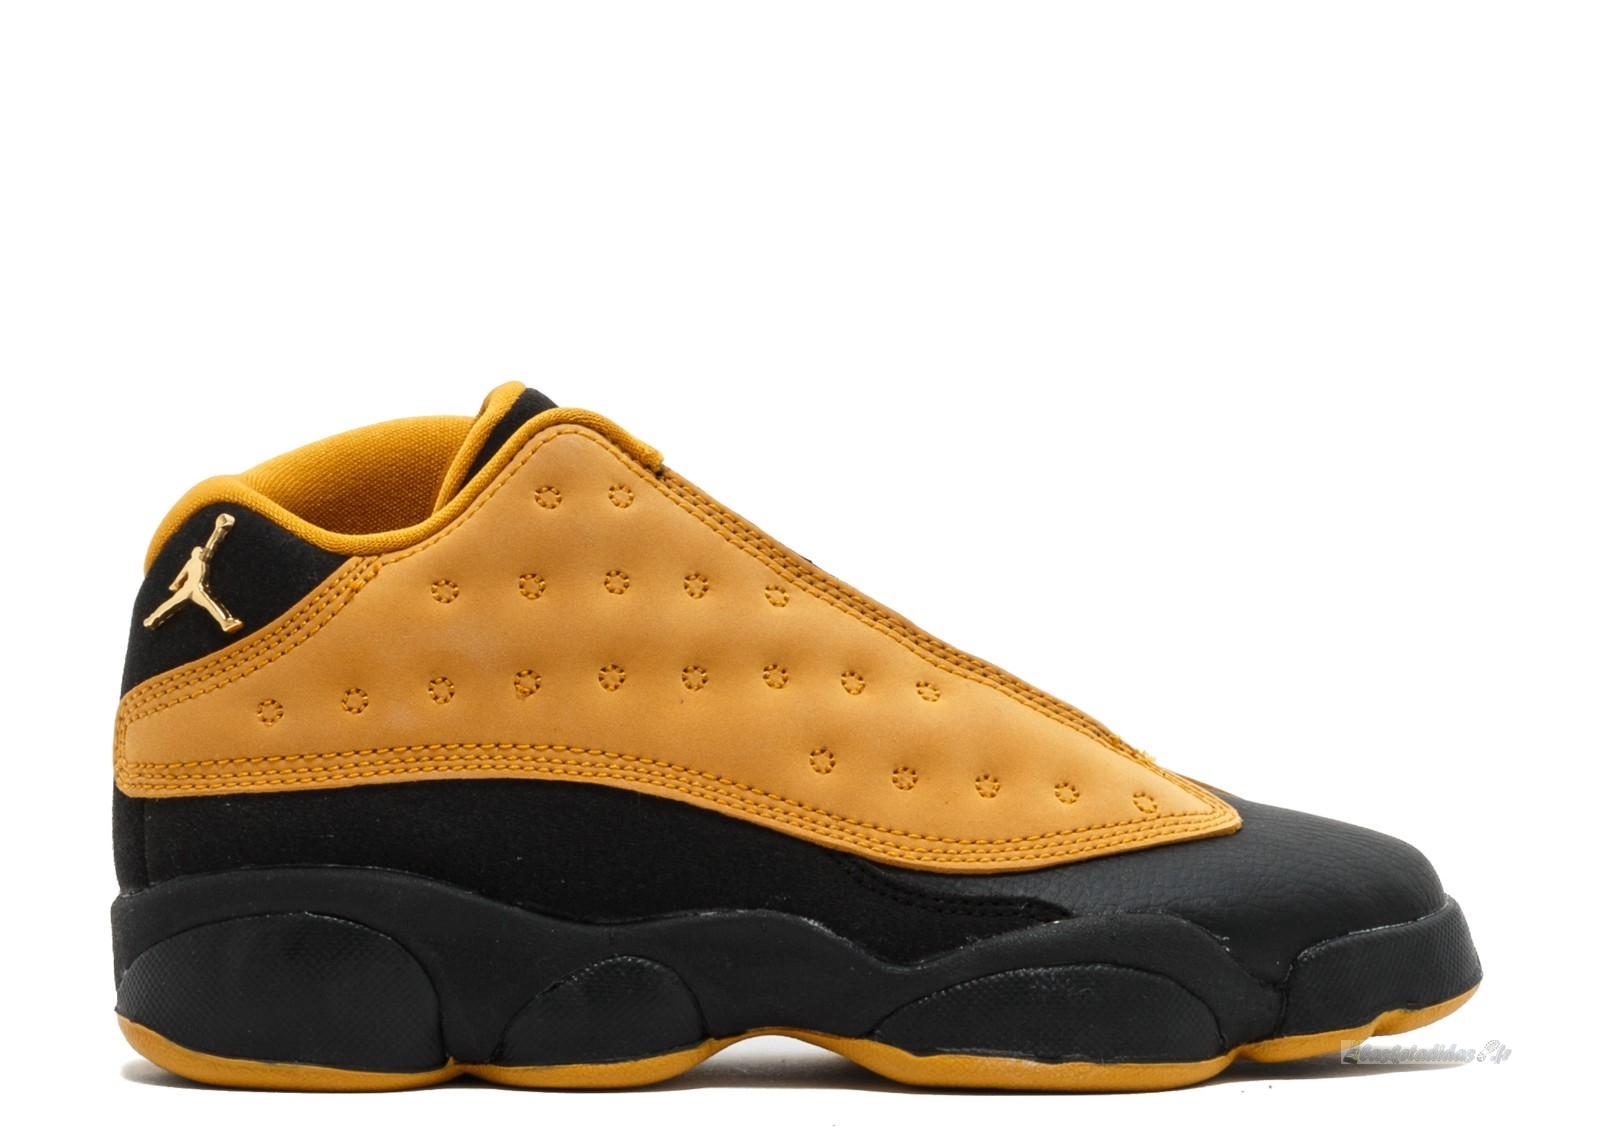 "Chaussure de Basket Air Jordan 13 Retro Low Bg (Gs) ""Chutney"" Marron Noir (310811-022)"